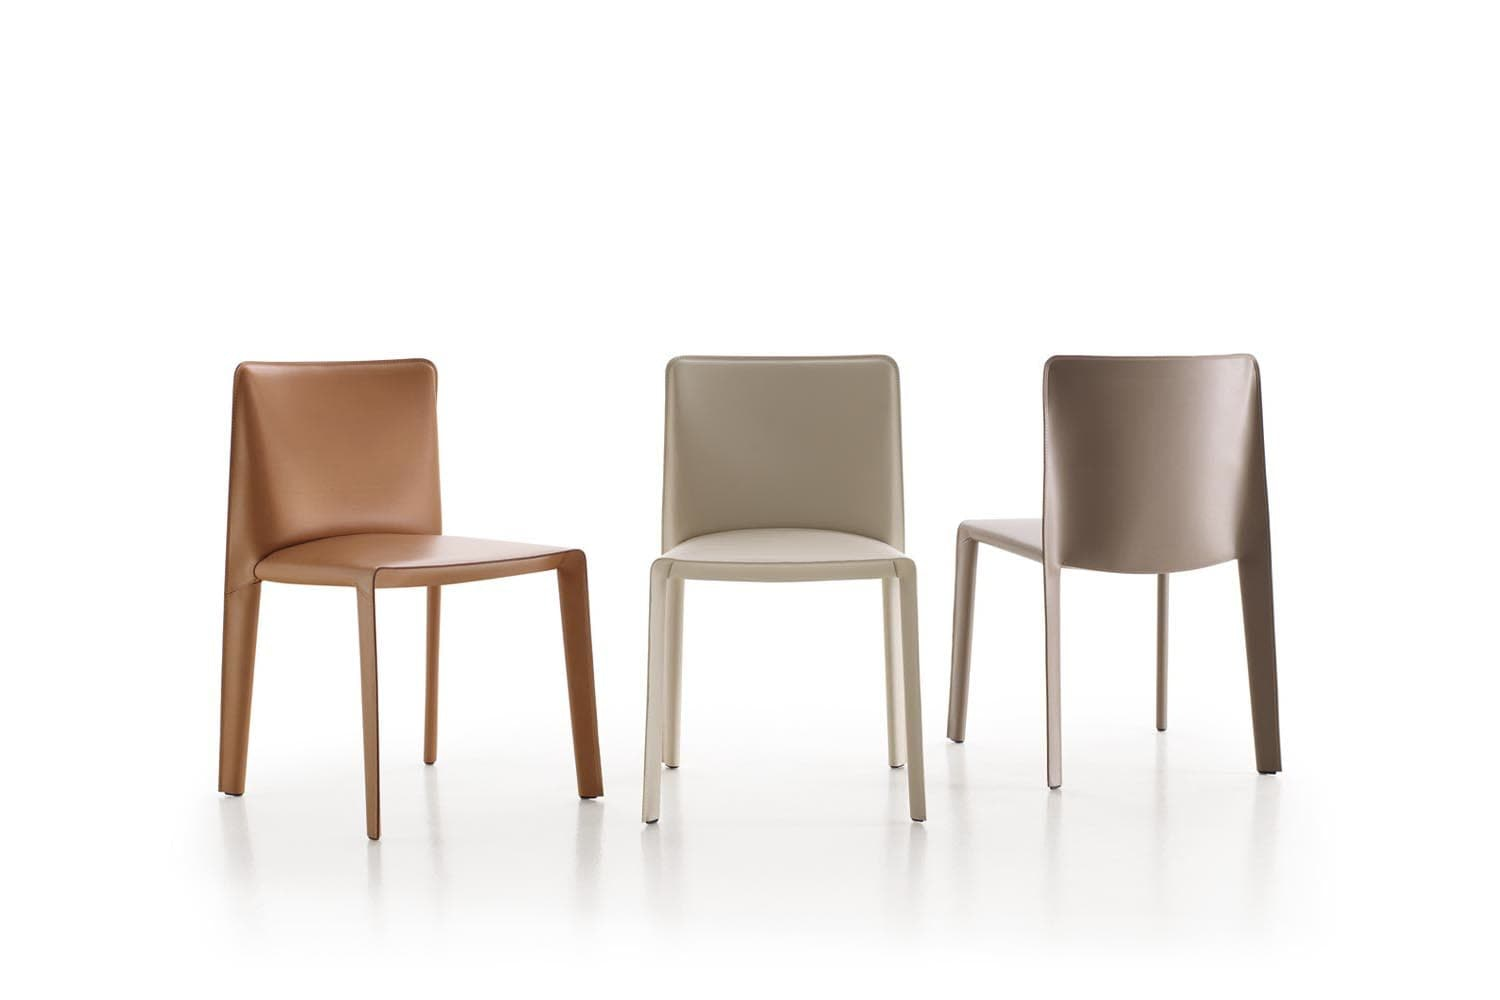 Doyl Chair by Gabriele & Oscar Buratti for B&B Italia